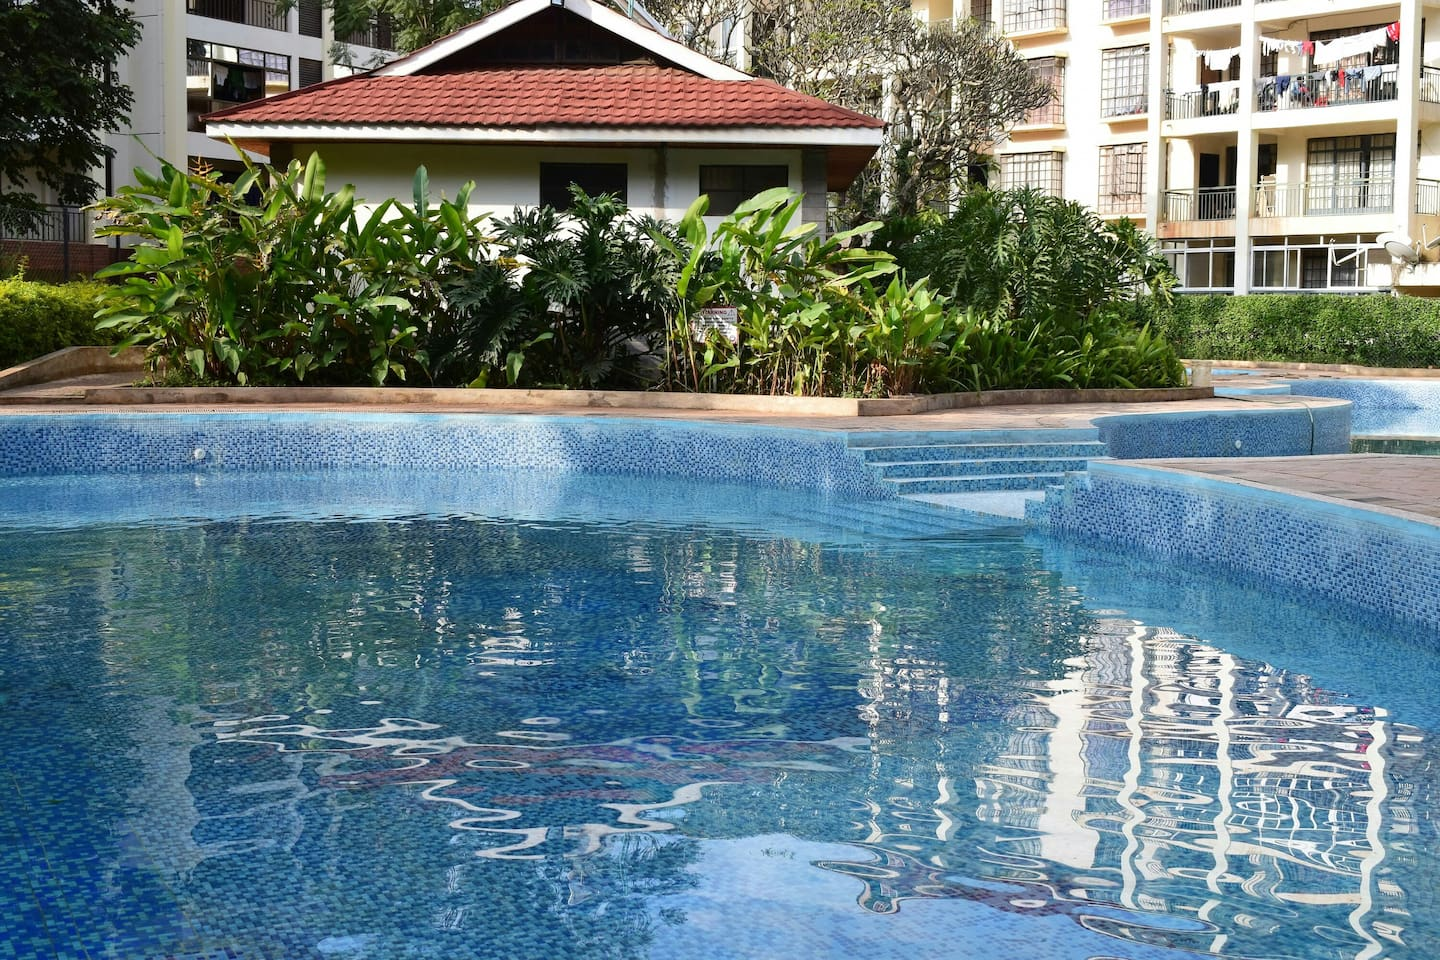 Swimming Pool available to Guests with security on guard especially to check on children during swim time. Clean and accessible change rooms within the swimming pool.